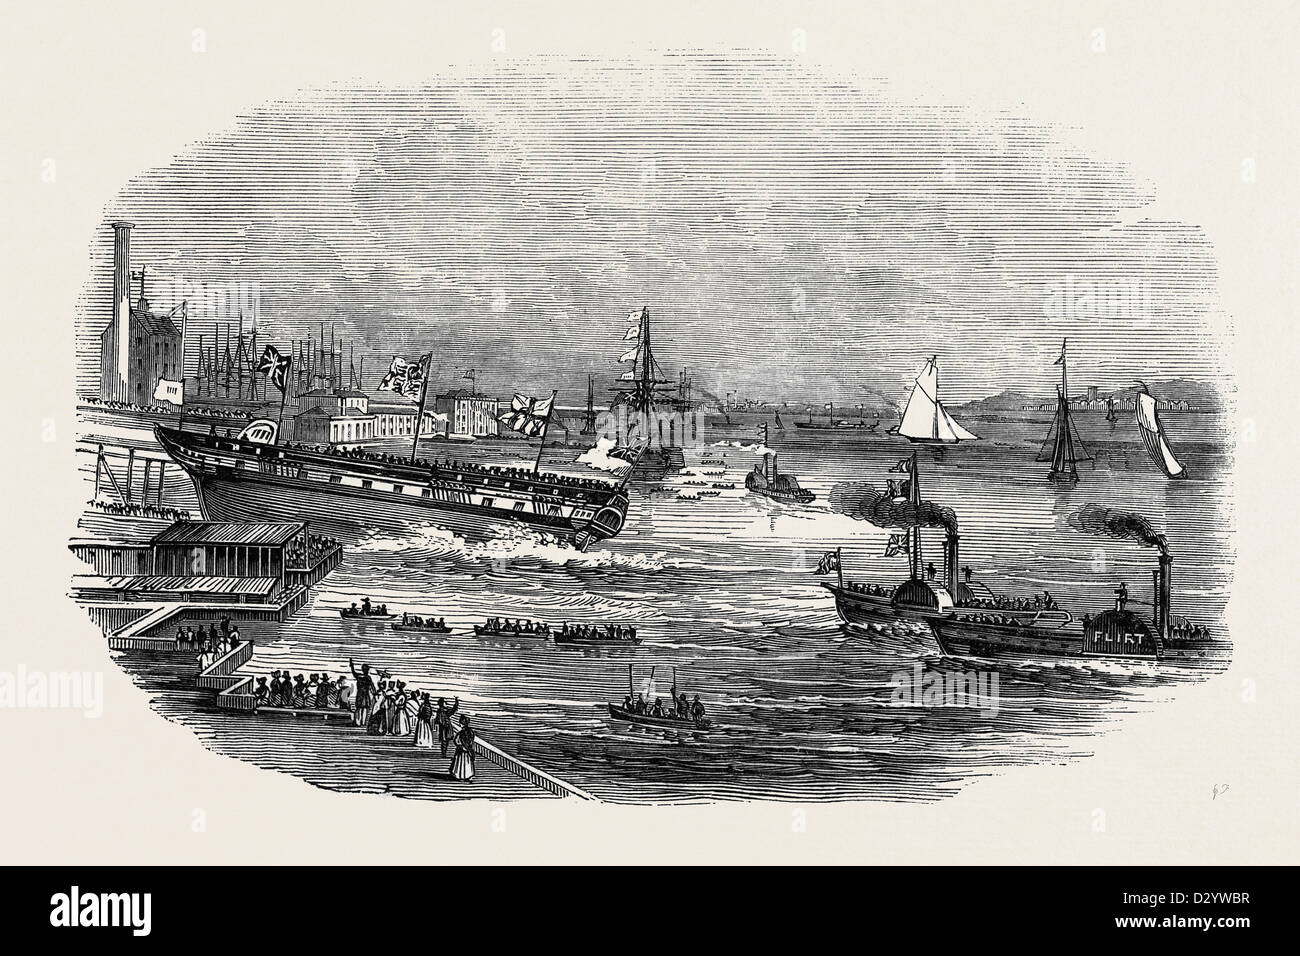 LAUNCH OF 'THE WELLESLEY,' AT BLACKWALL - Stock Image